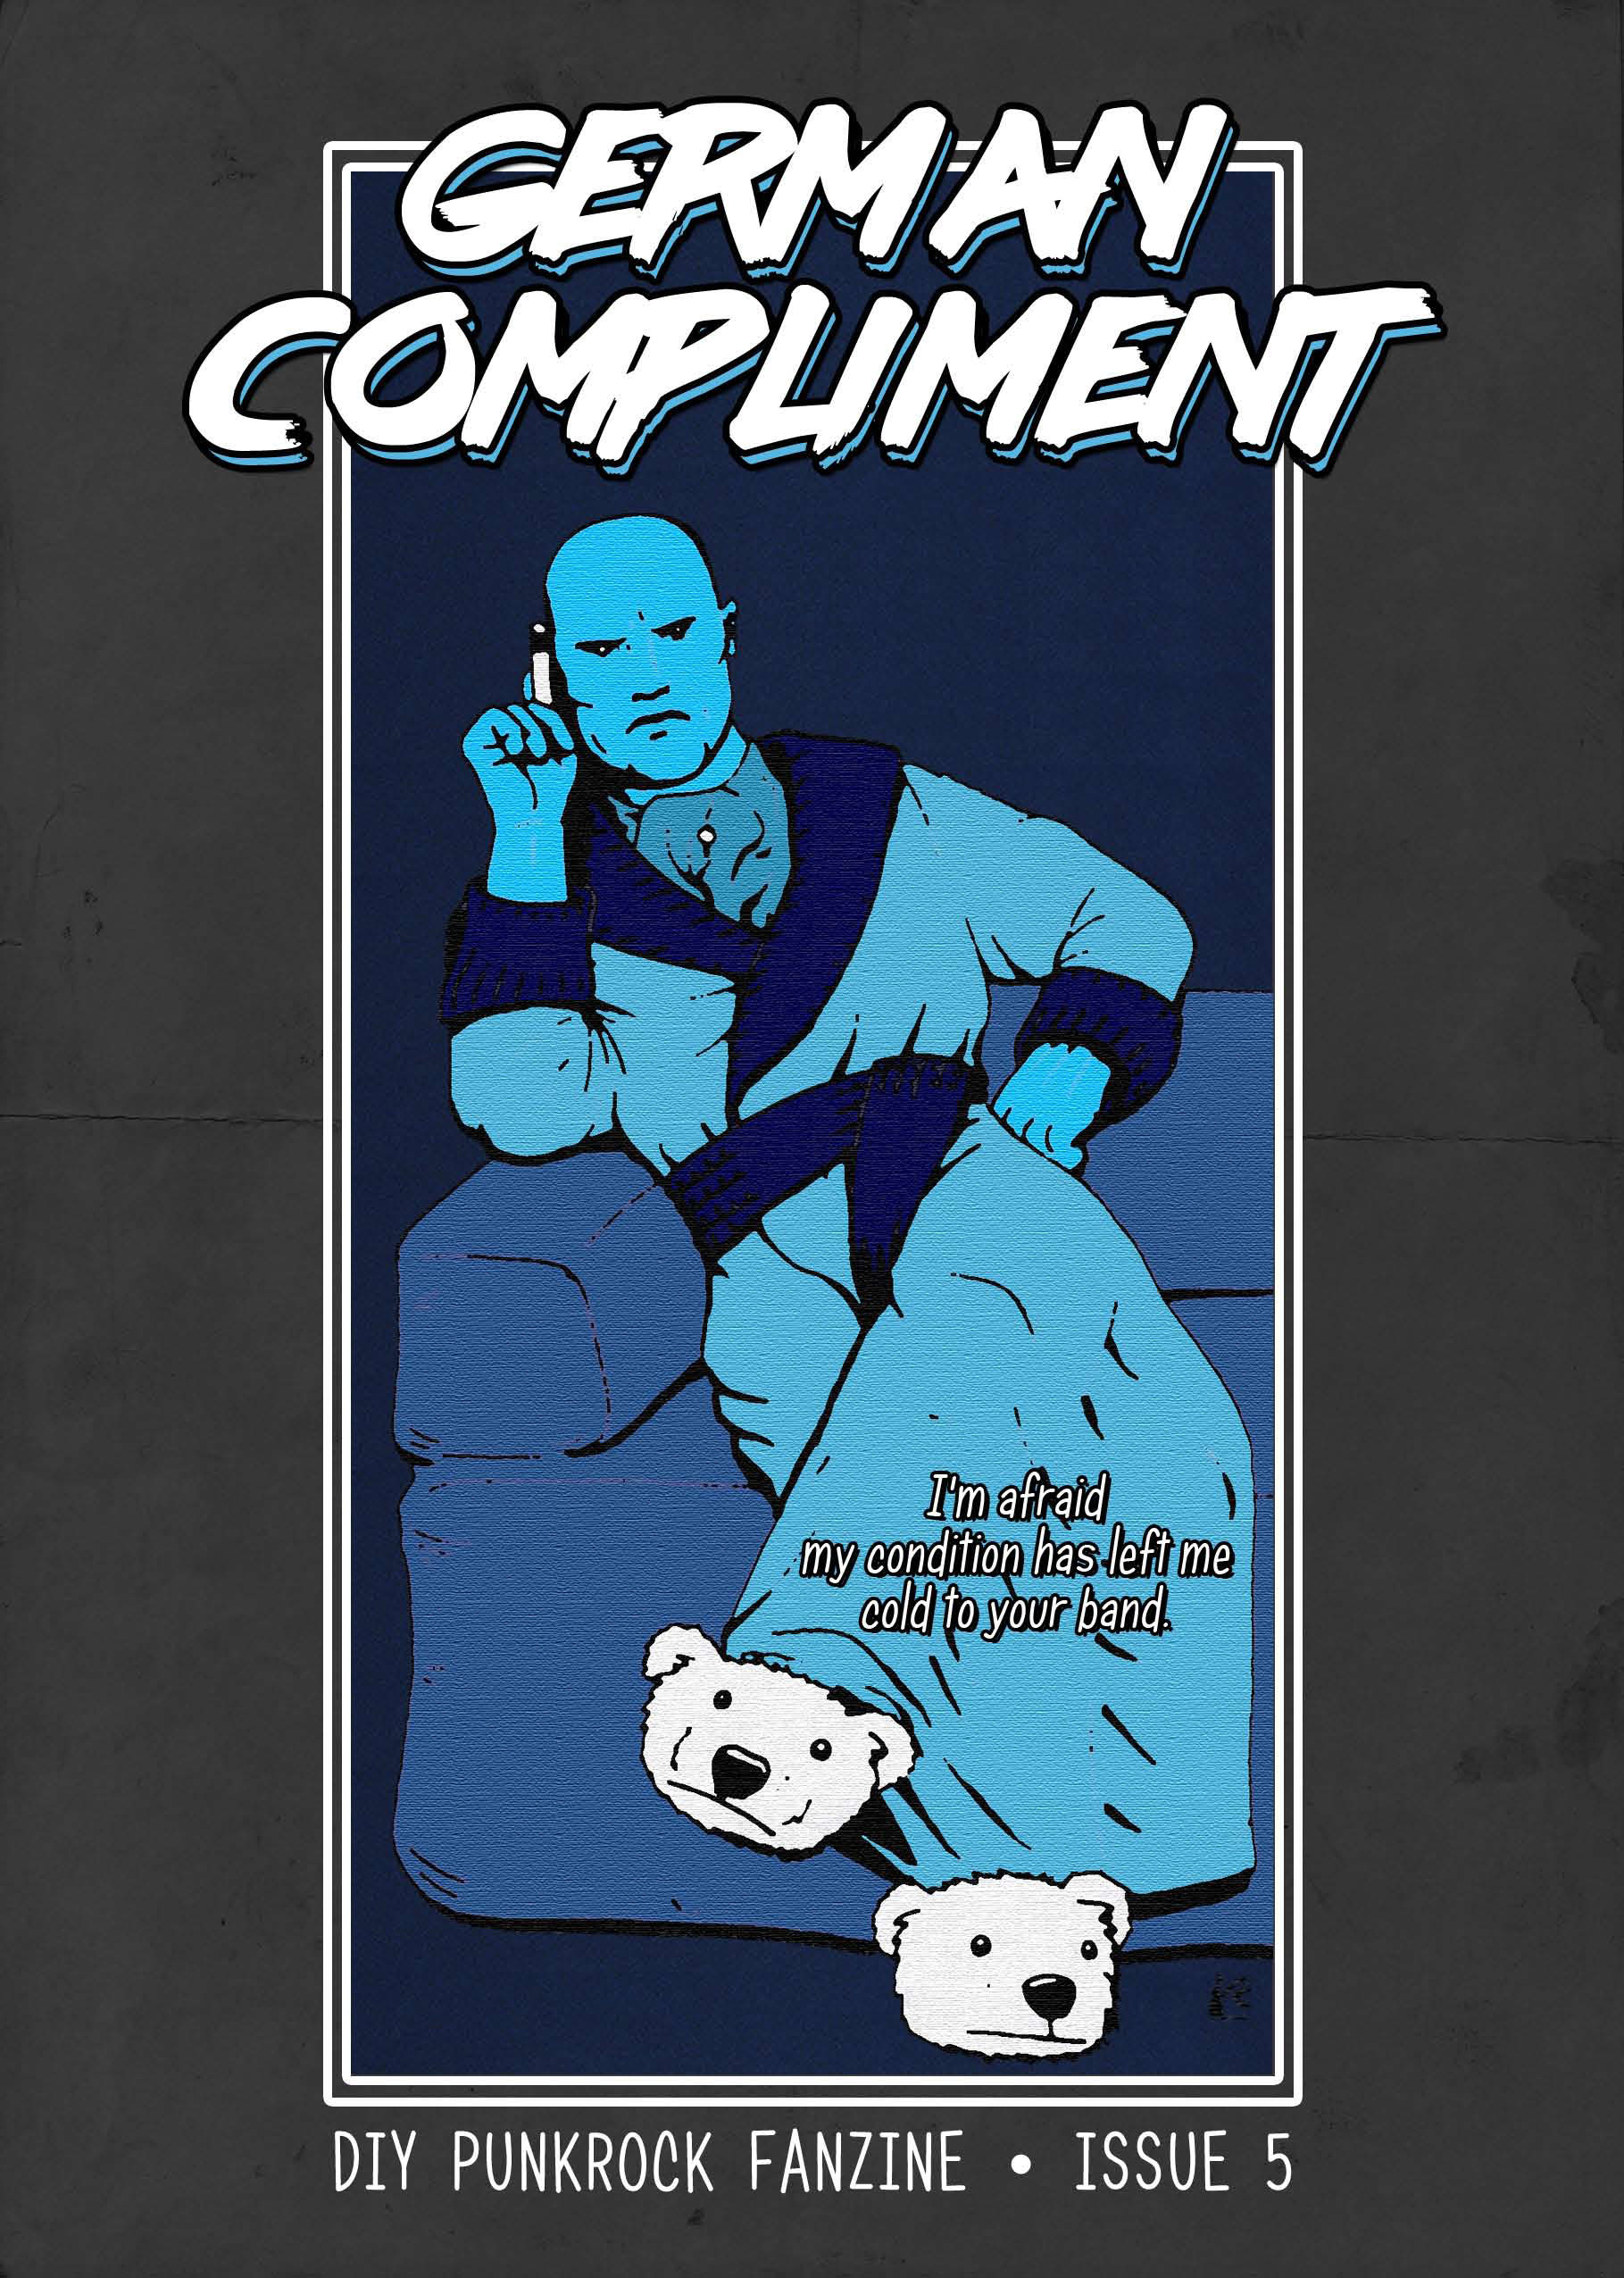 -sold out- German Compliment #5